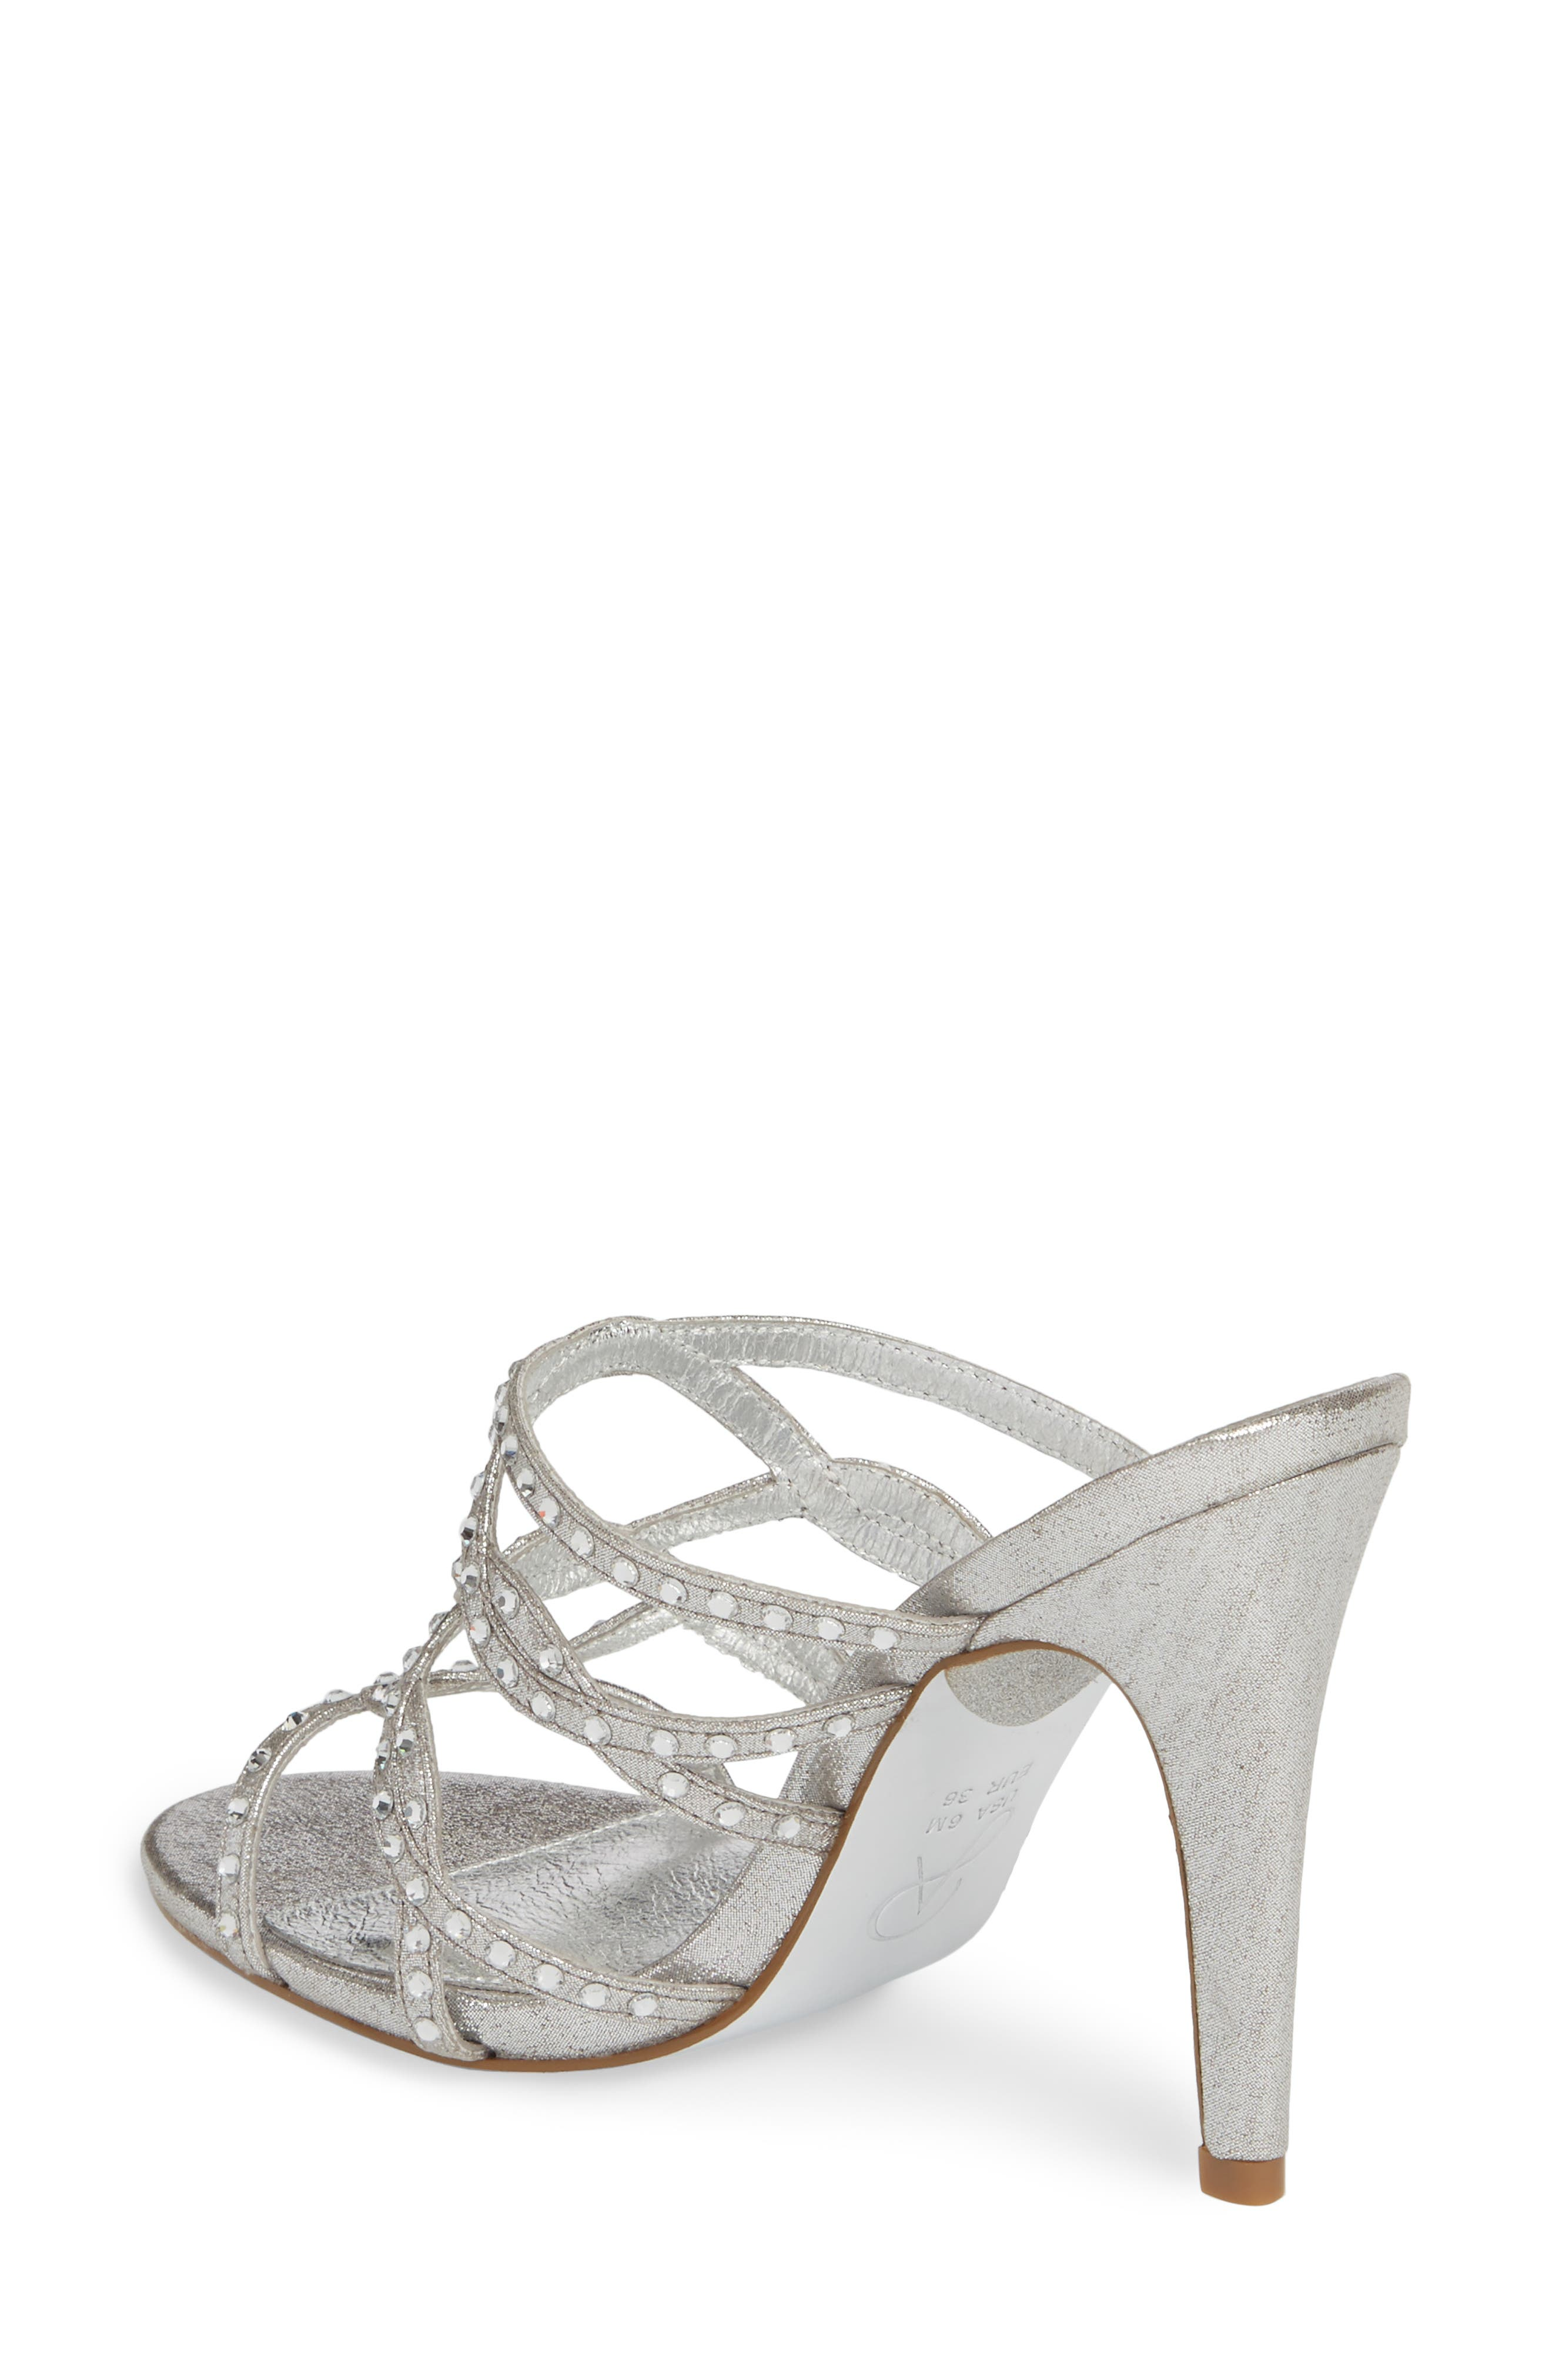 Emma Strappy Sandal,                             Alternate thumbnail 2, color,                             Silver Fabric